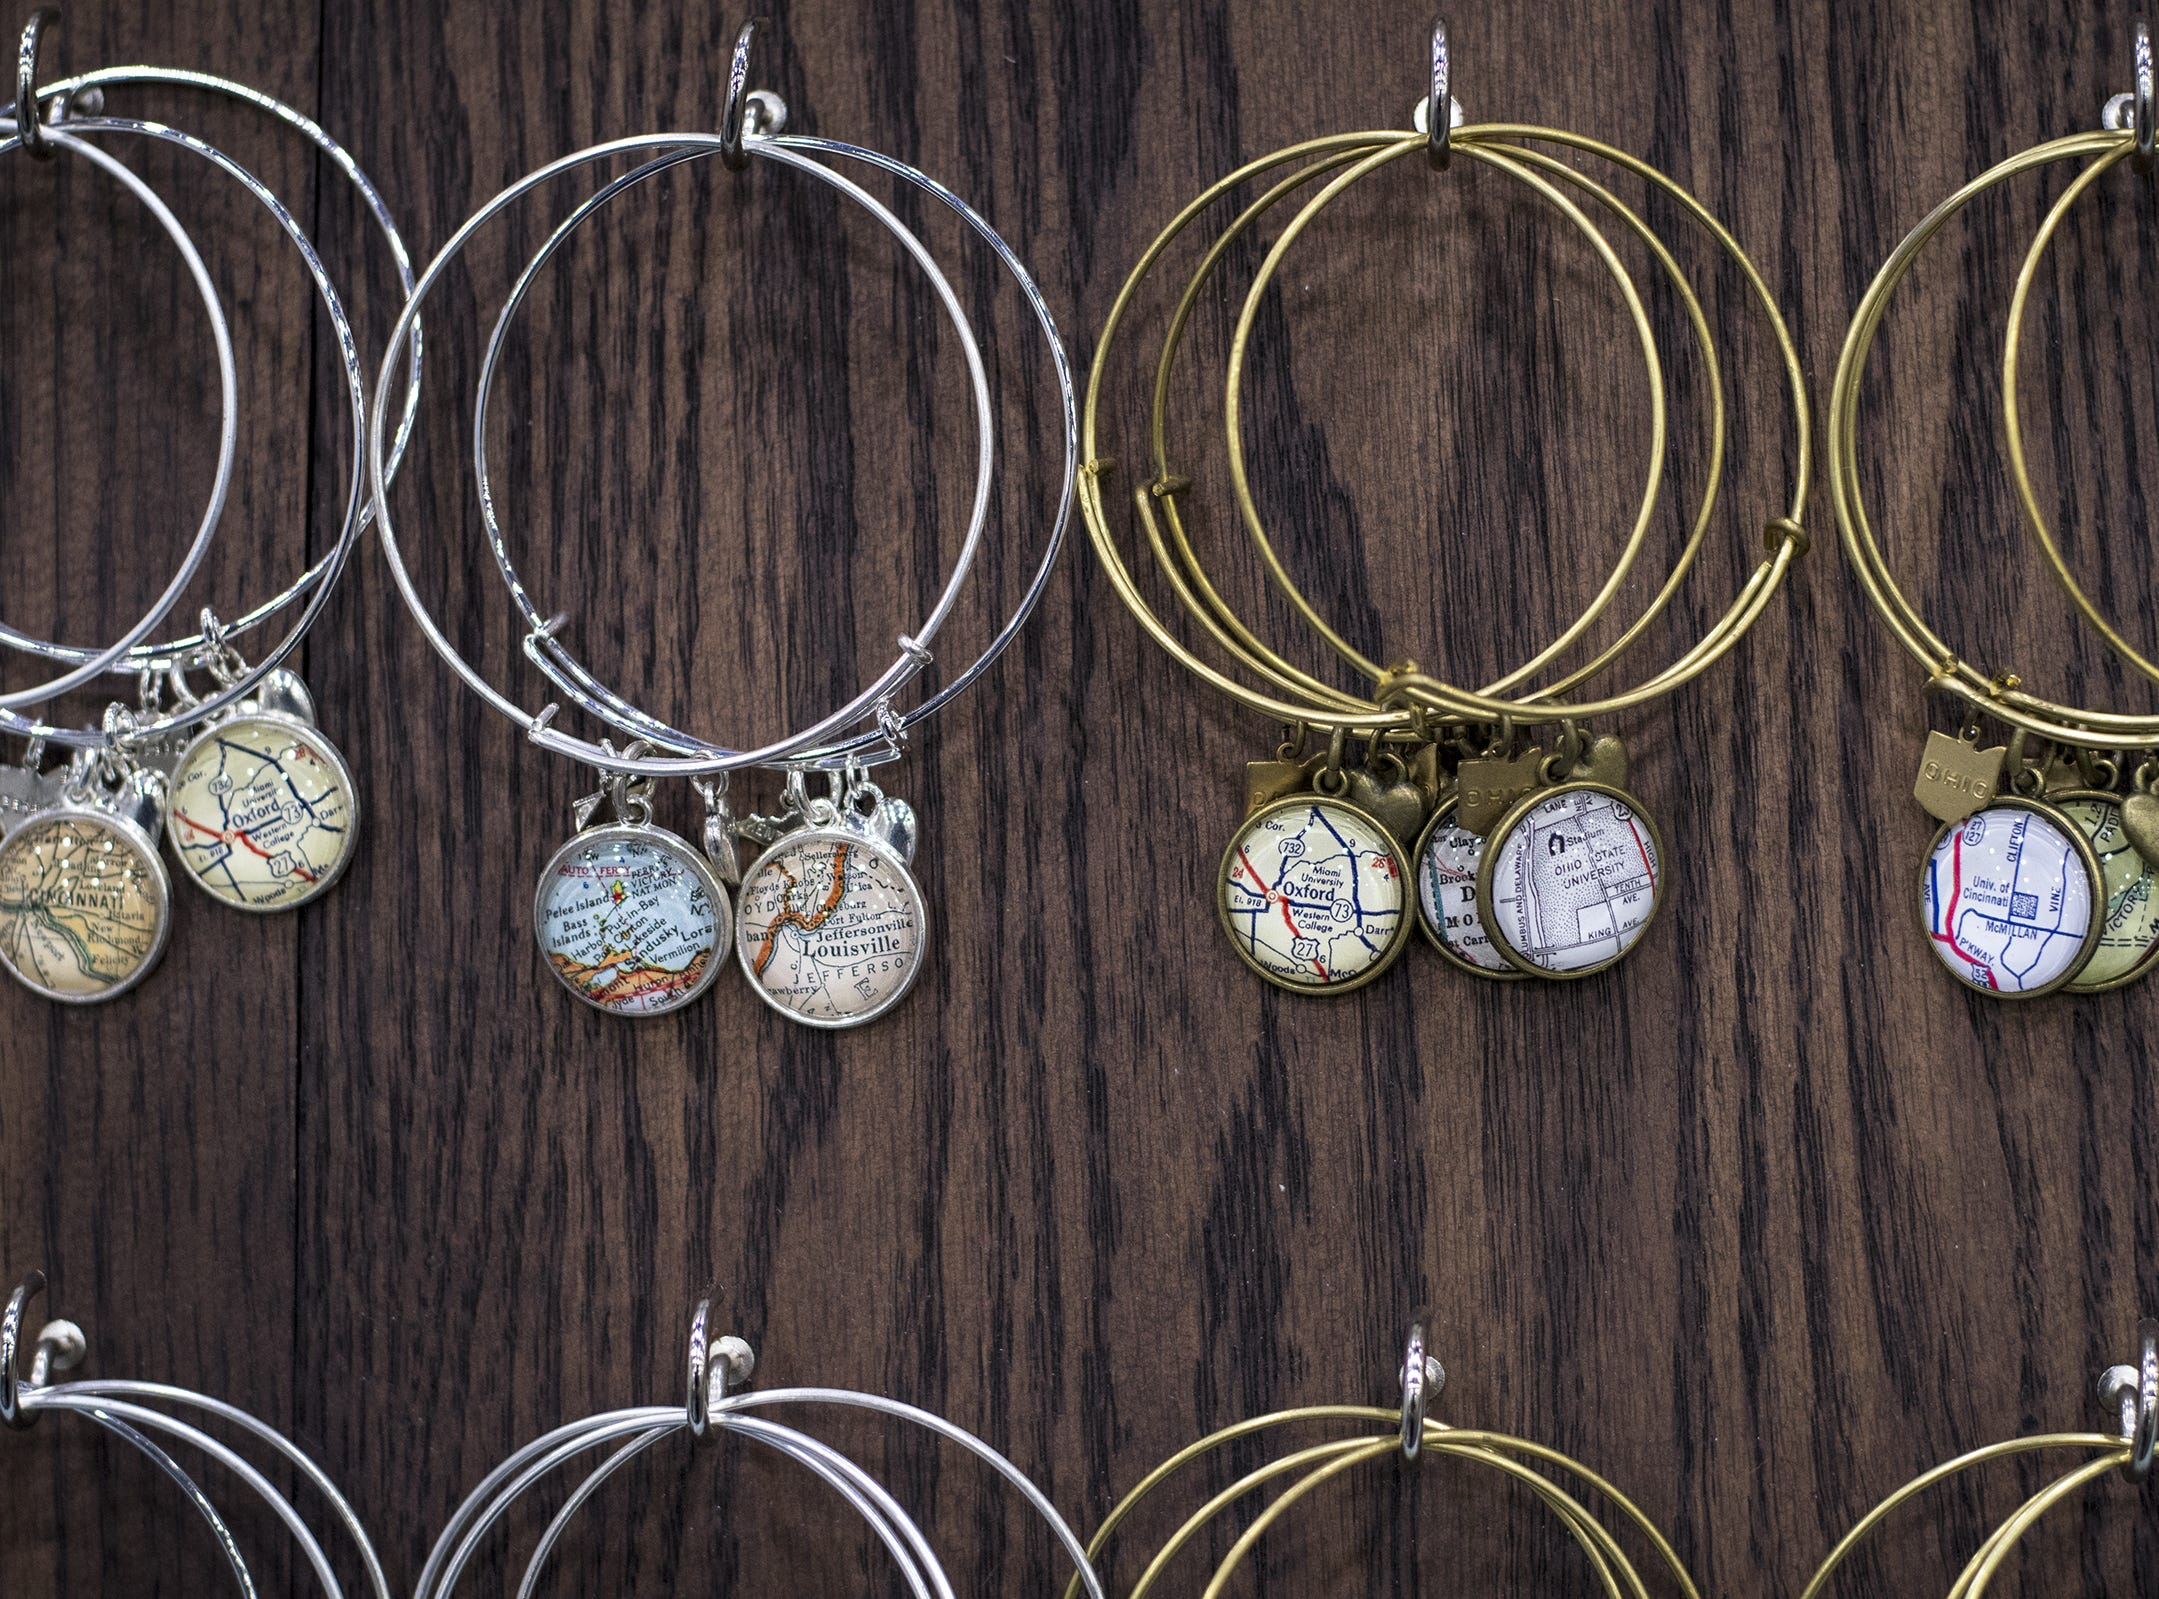 Daisy Mae Designs sells handmade jewelry featuring maps of special places during the Greater Cincinnati Holiday Market at the Duke Energy Center Friday, November 2, 2018 in Cincinnati, Ohio. The event runs through Sunday, November 4.